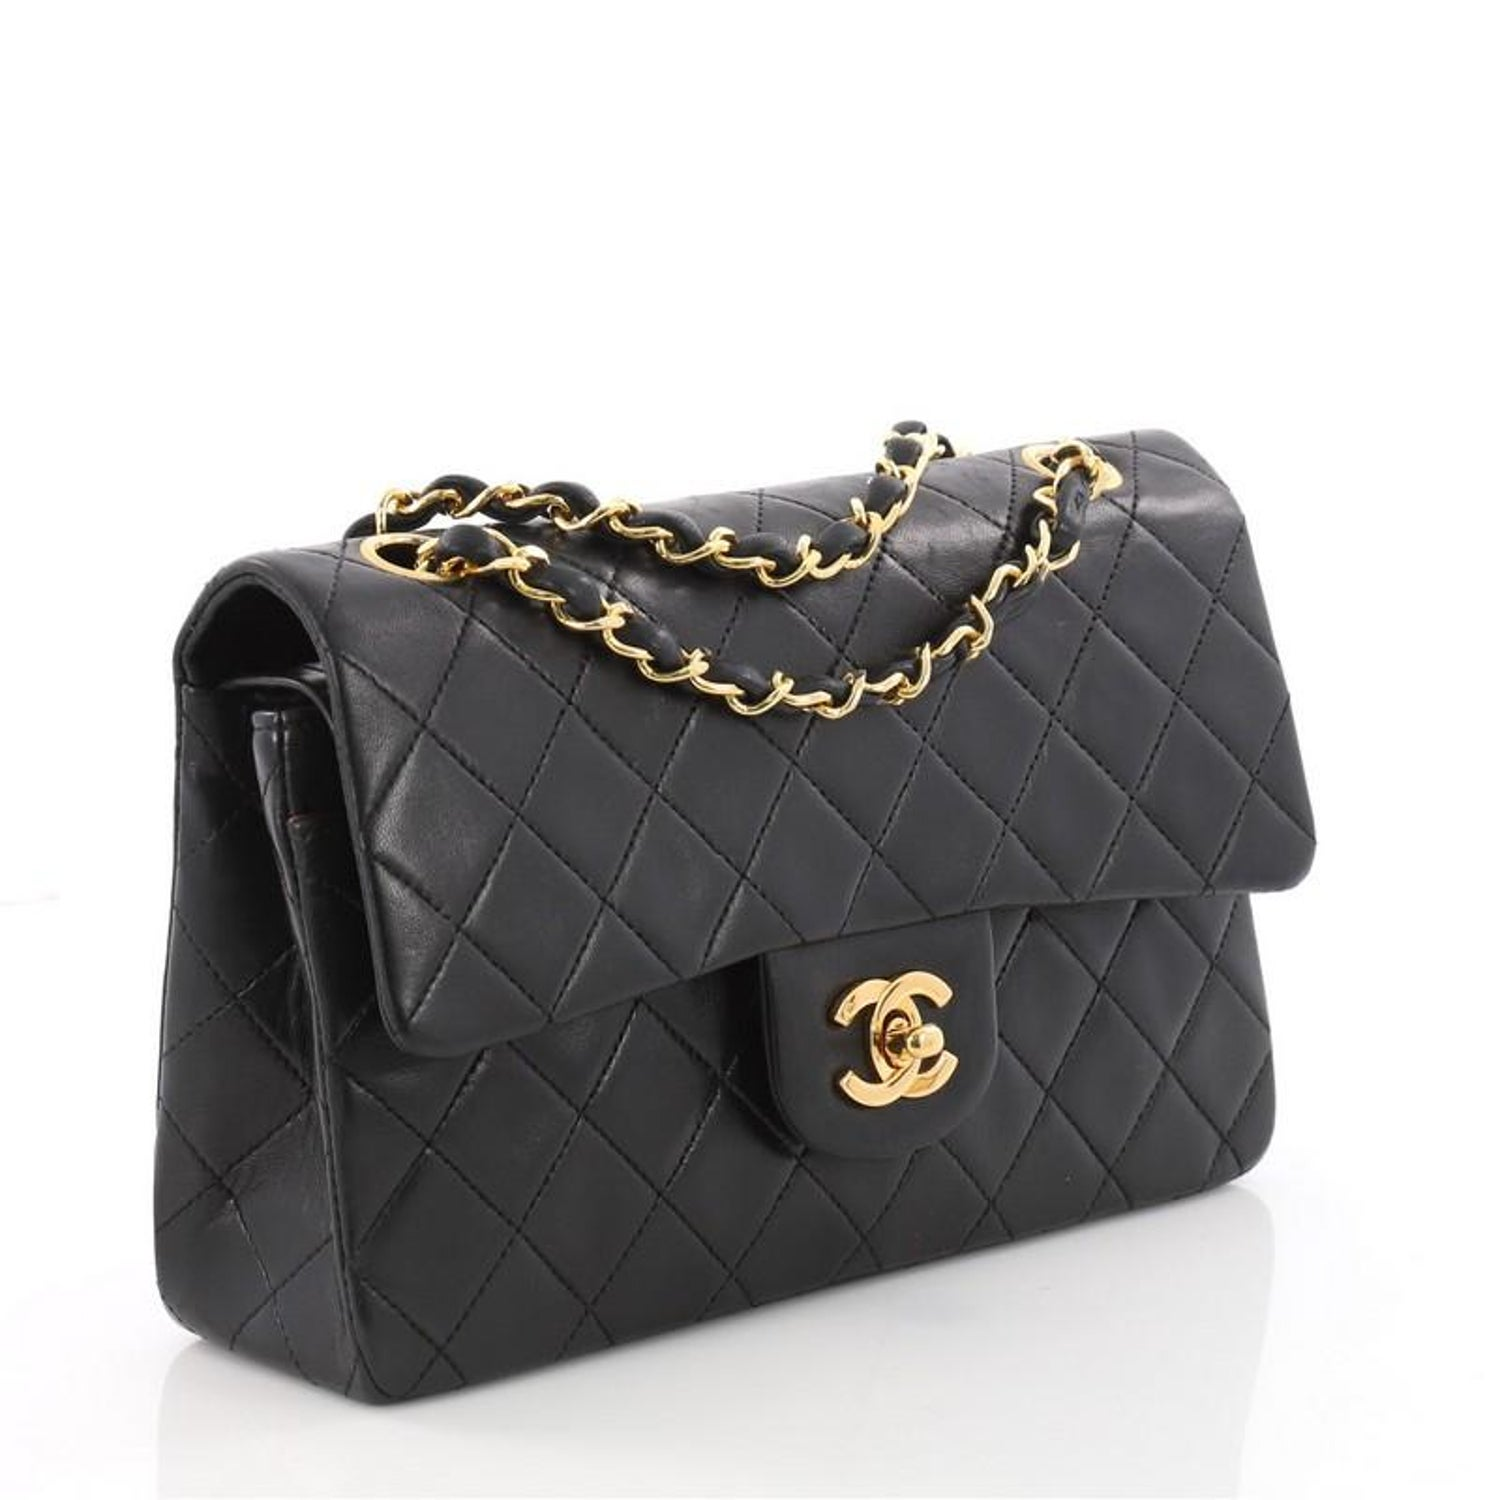 714bd42d6109 Chanel Vintage Classic Double Flap Bag Quilted Lambskin Small at 1stdibs